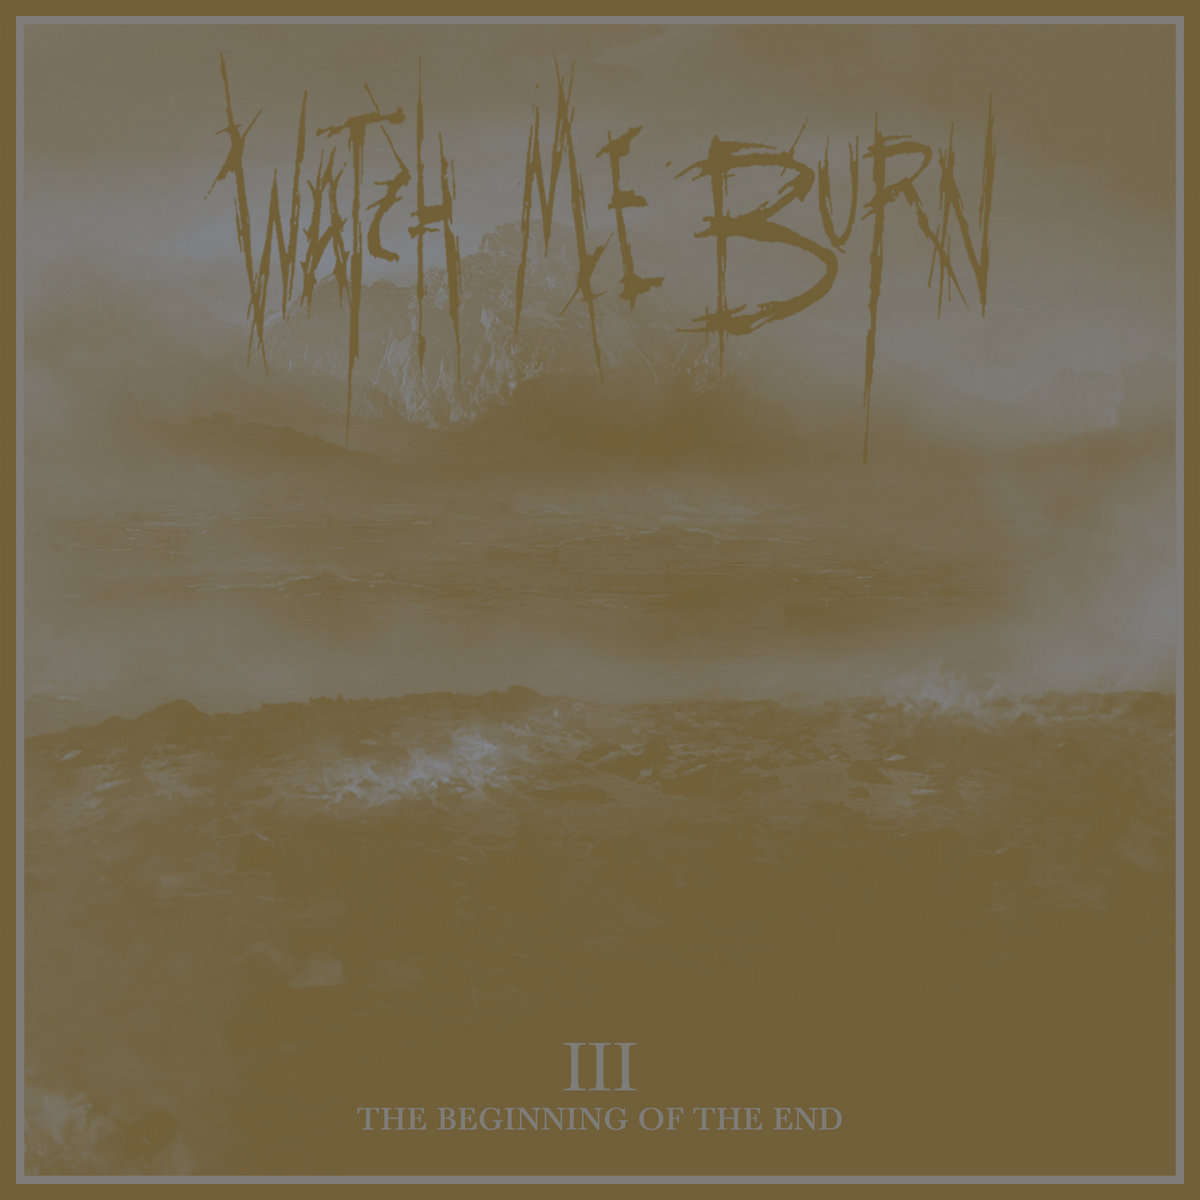 Watch Me Burn - III (The Beginning of the End)